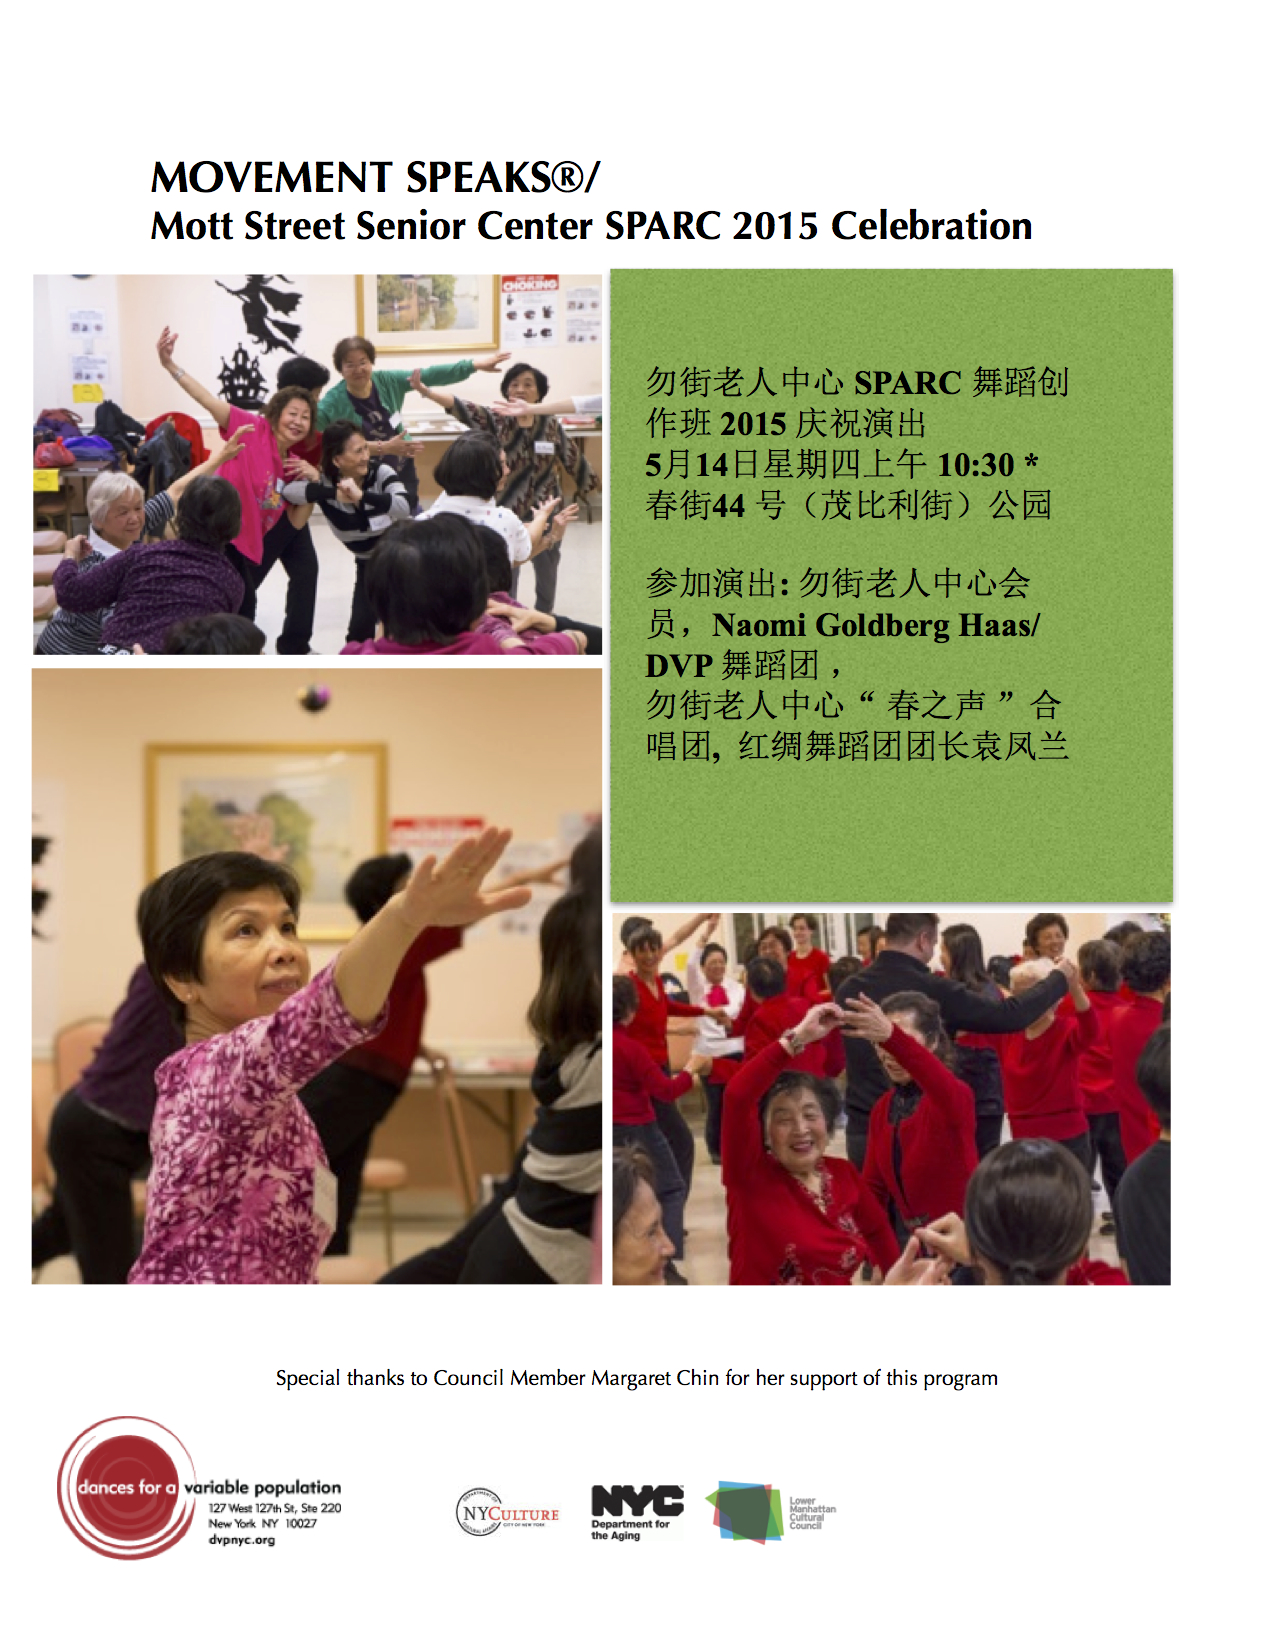 Mott Street SPARC Performance May 6 2015 CHINESE